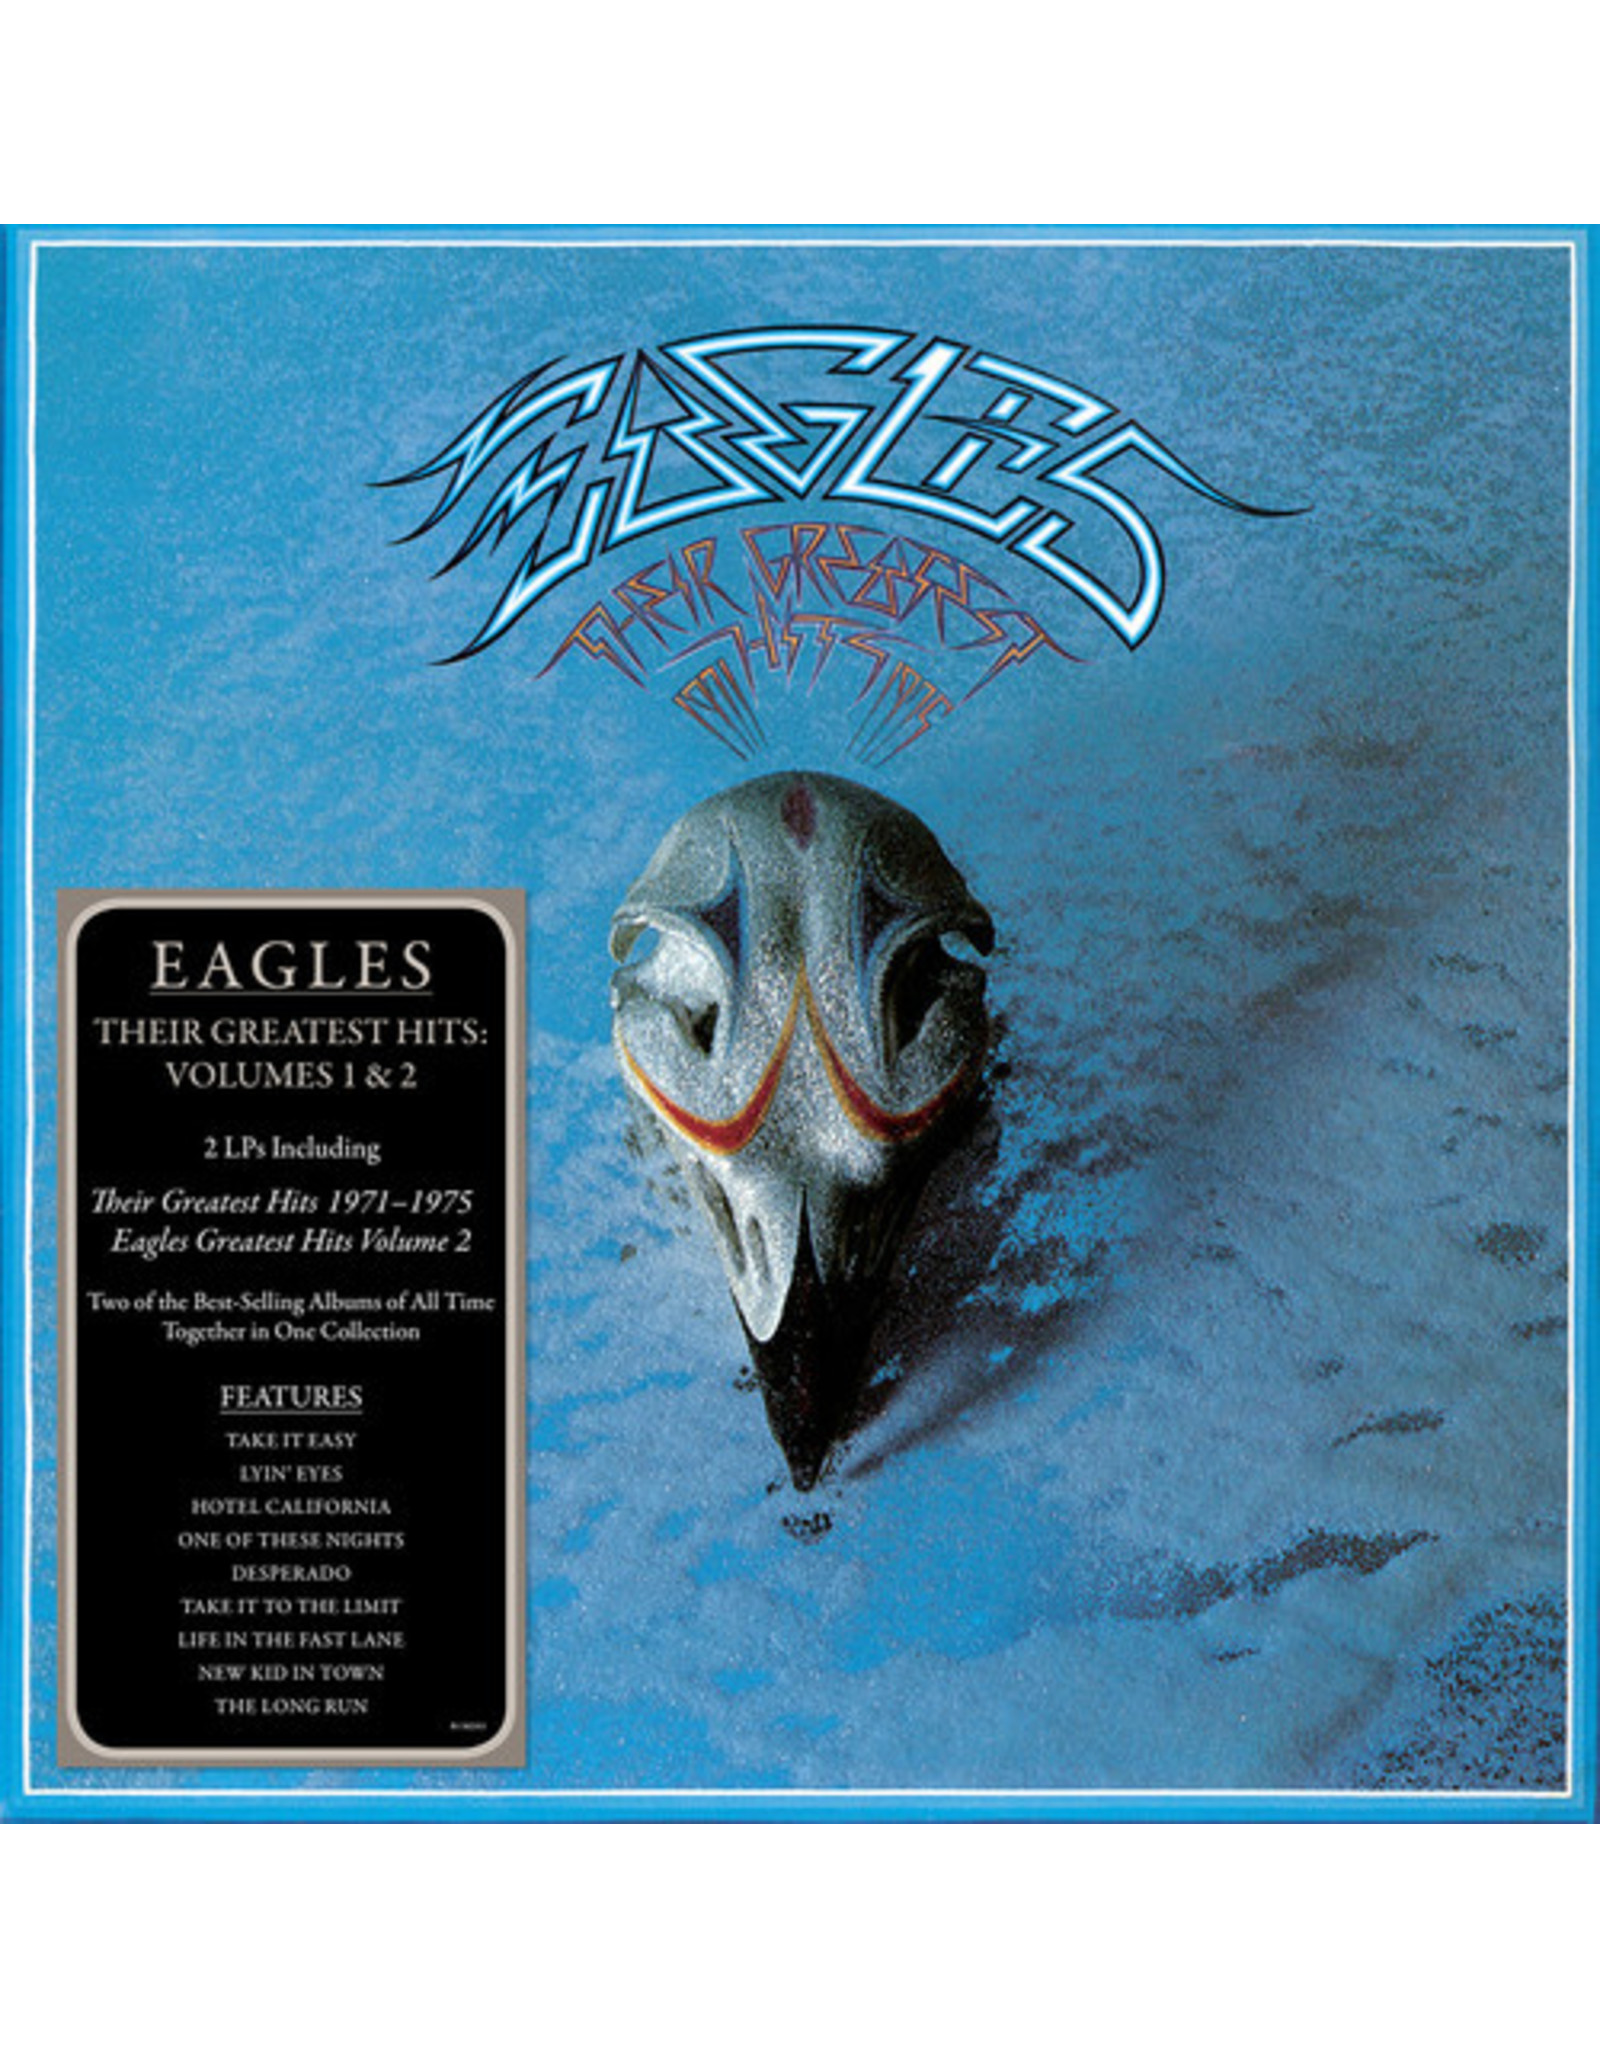 New Vinyl Eagles - Their Greatest Hits Vol. 1&2 2LP